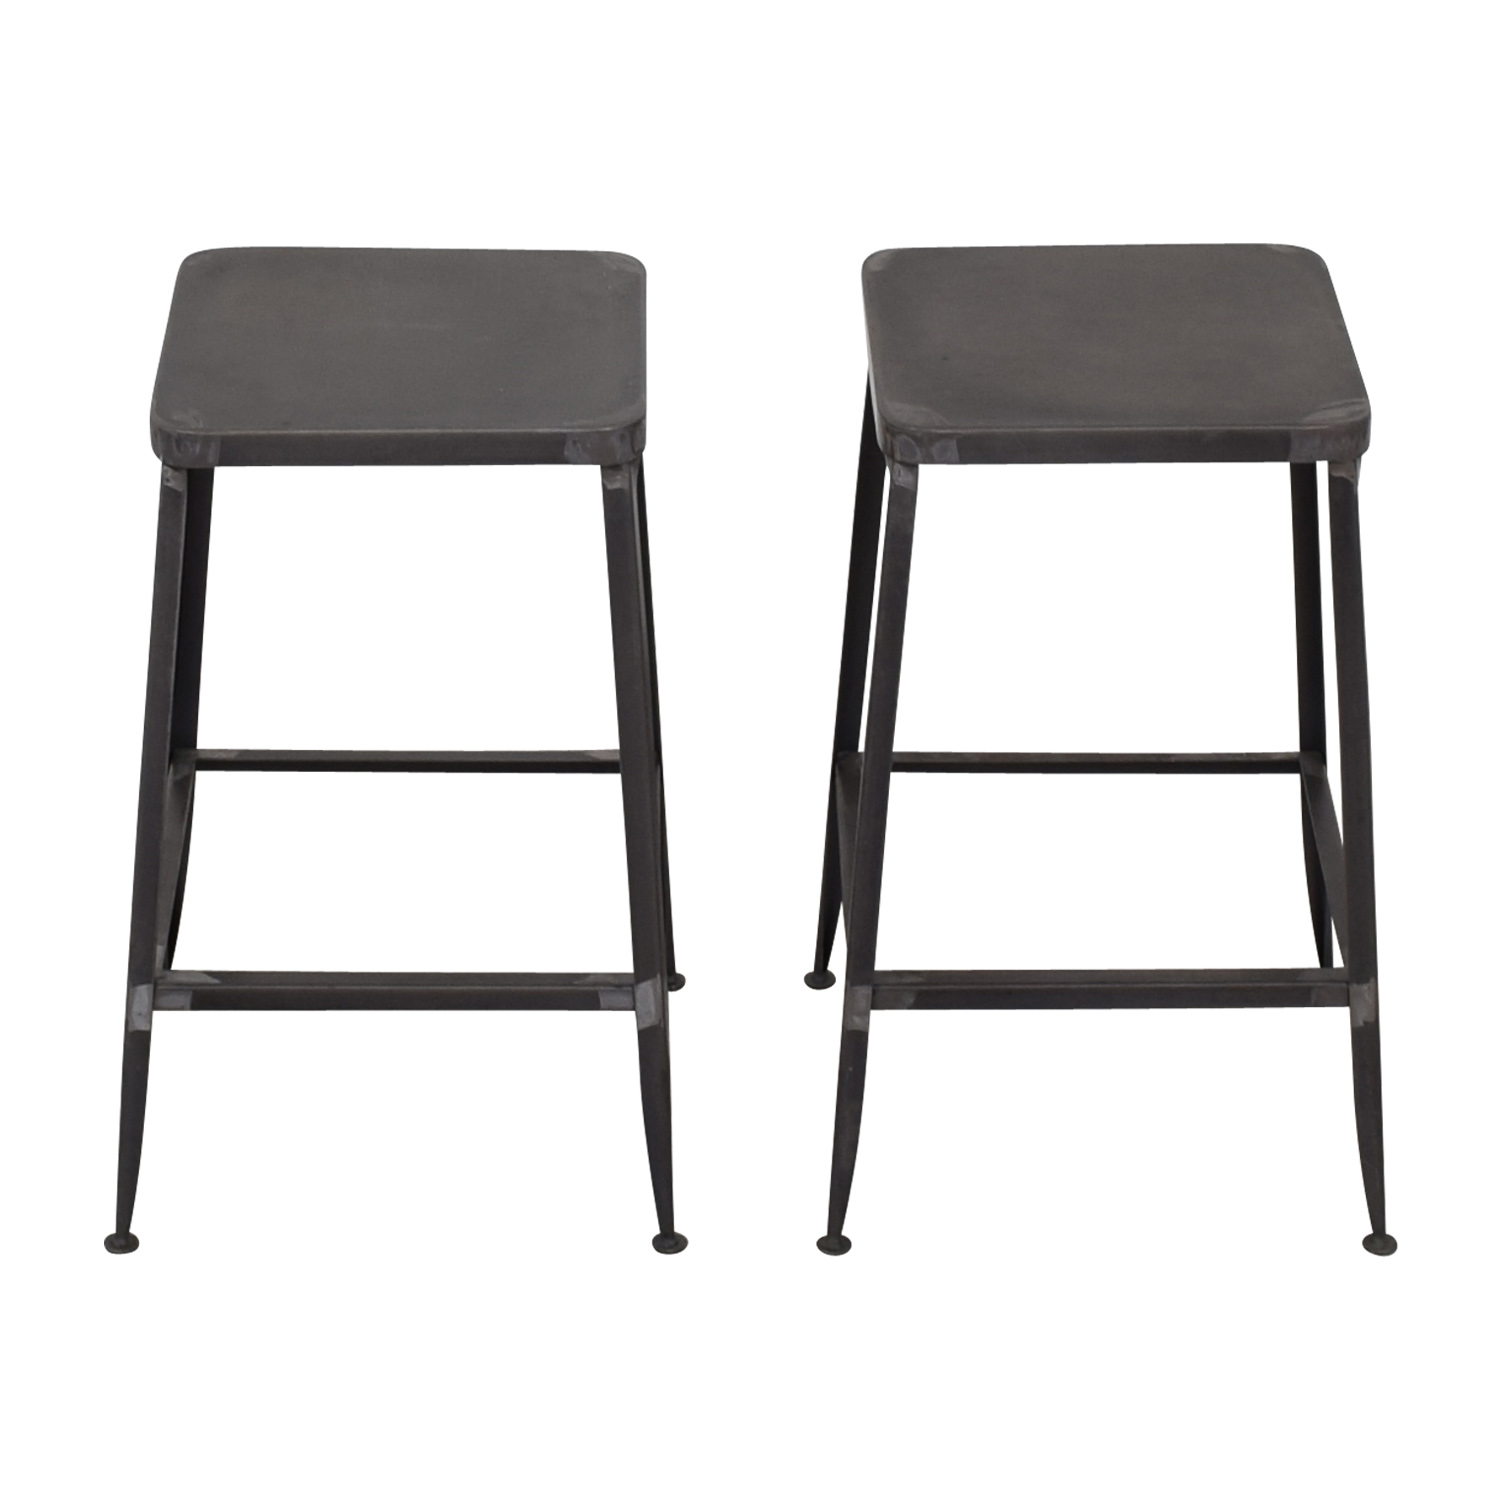 CB2 CB2 Flint Steel Counter Stools for sale